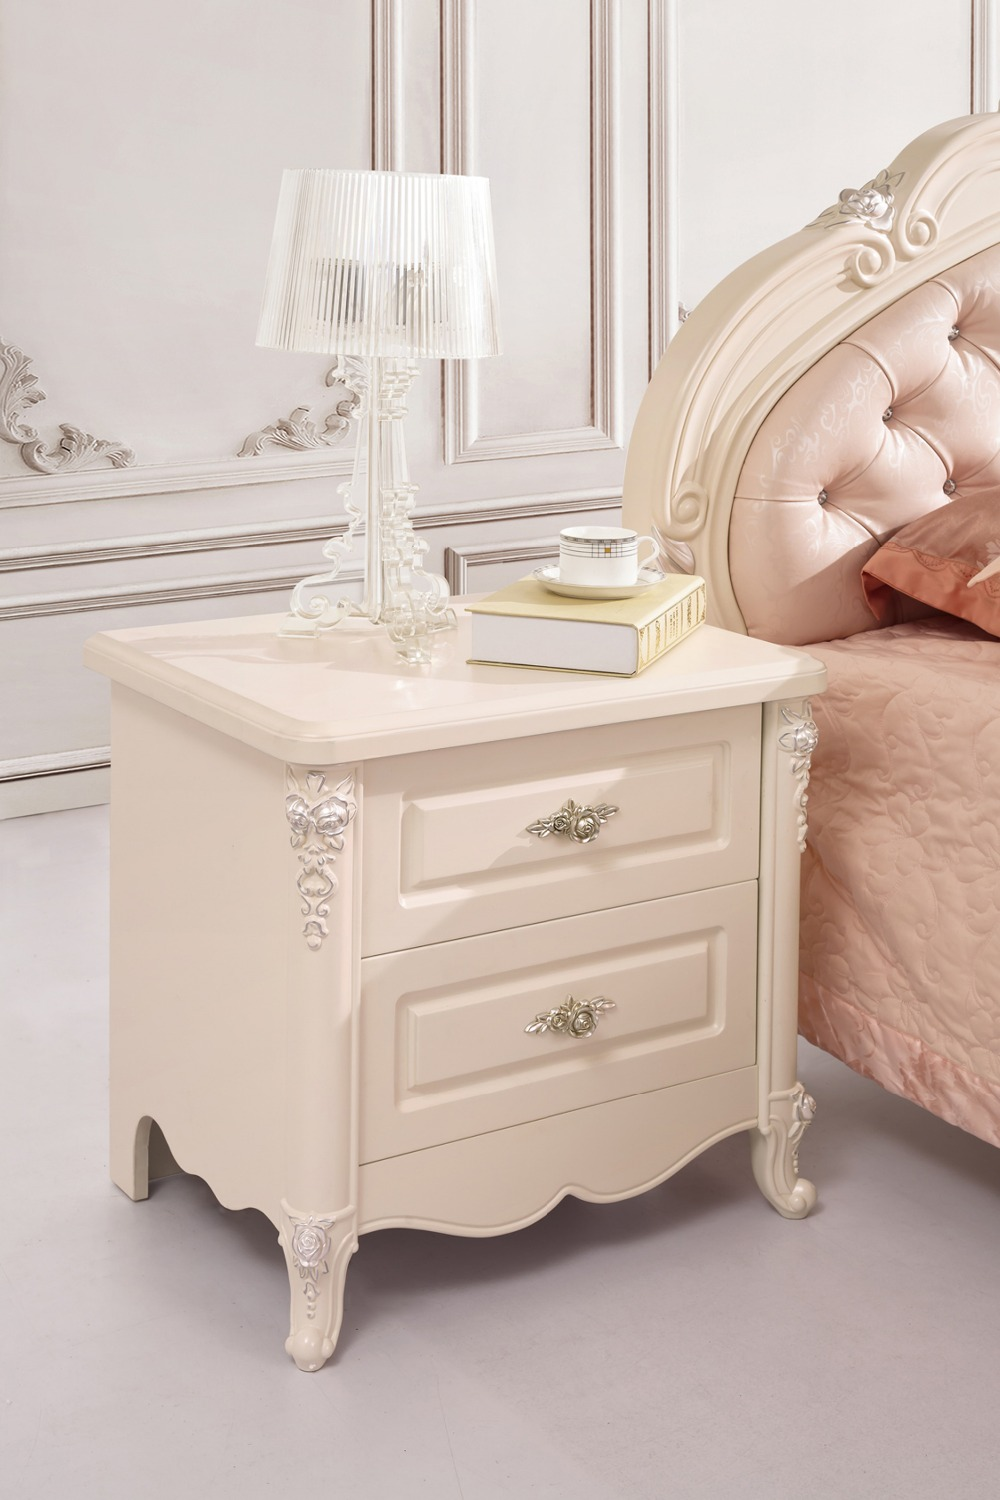 Set wooden bedroom furniture set view royal furniture bedroom sets - 2016 Real New High Class European Style Bedside Table Nightstand Hand Carved Solid Wood Bedroom Furniture From Foshan Market